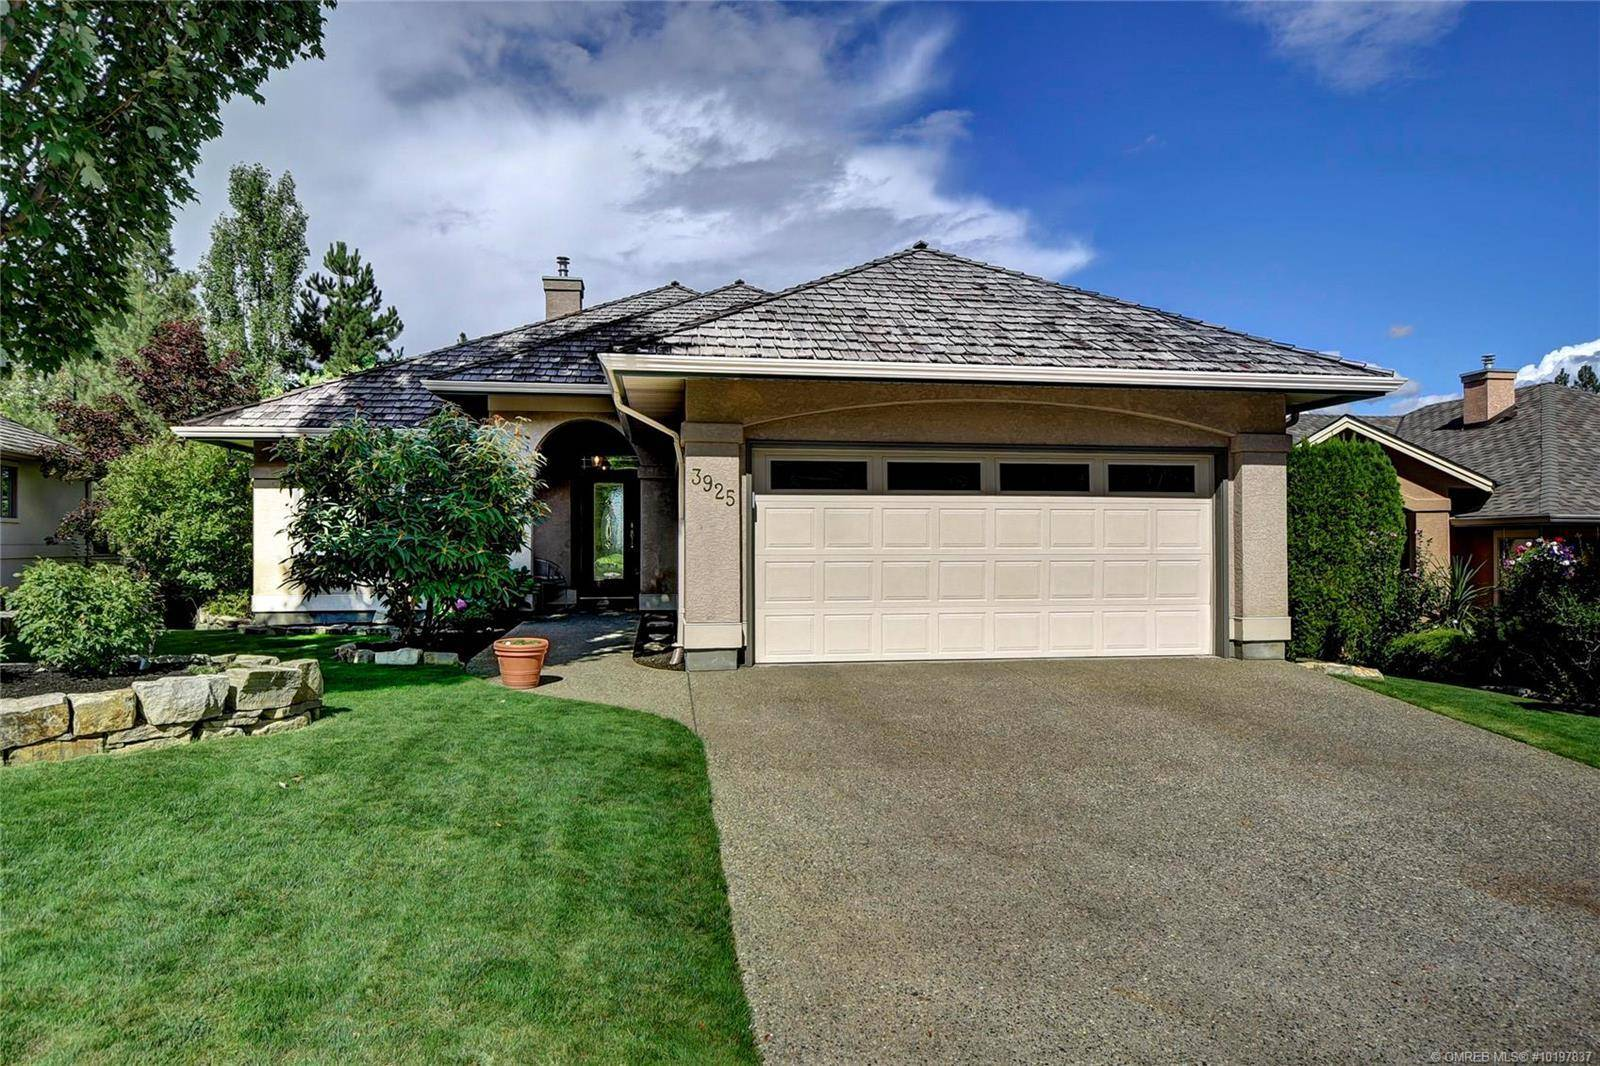 House for sale at 3925 Gallaghers Circ Kelowna British Columbia - MLS: 10197837